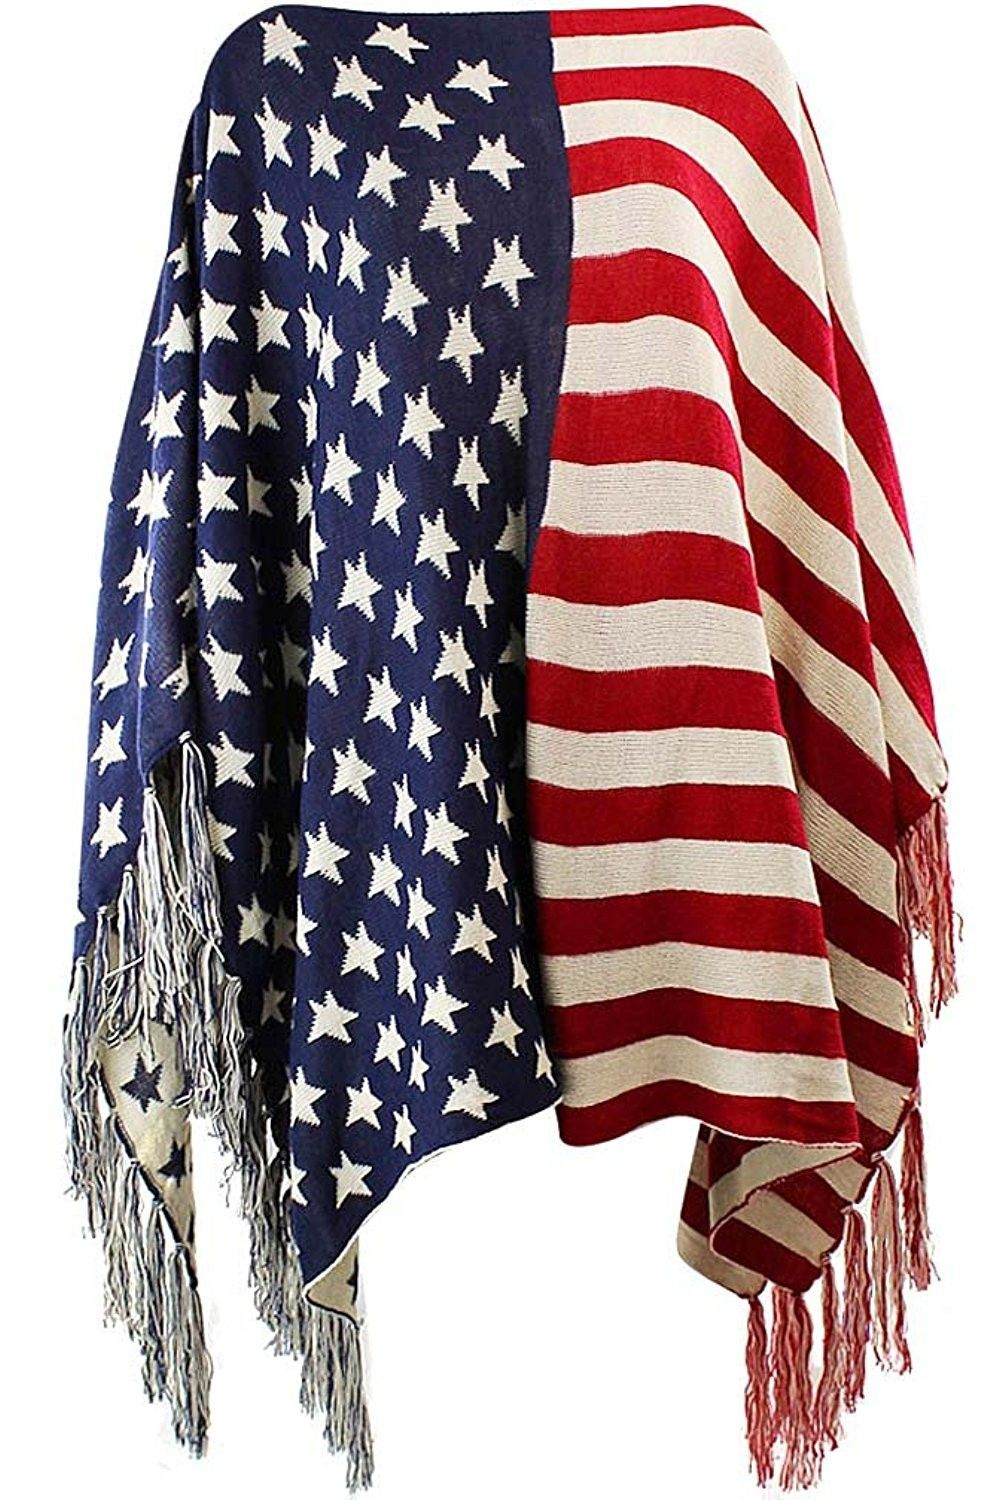 American Flag Print Knit Poncho With Fringe Ck12n7y6lbr Knitted Poncho American Flag Print American Flag Sweater